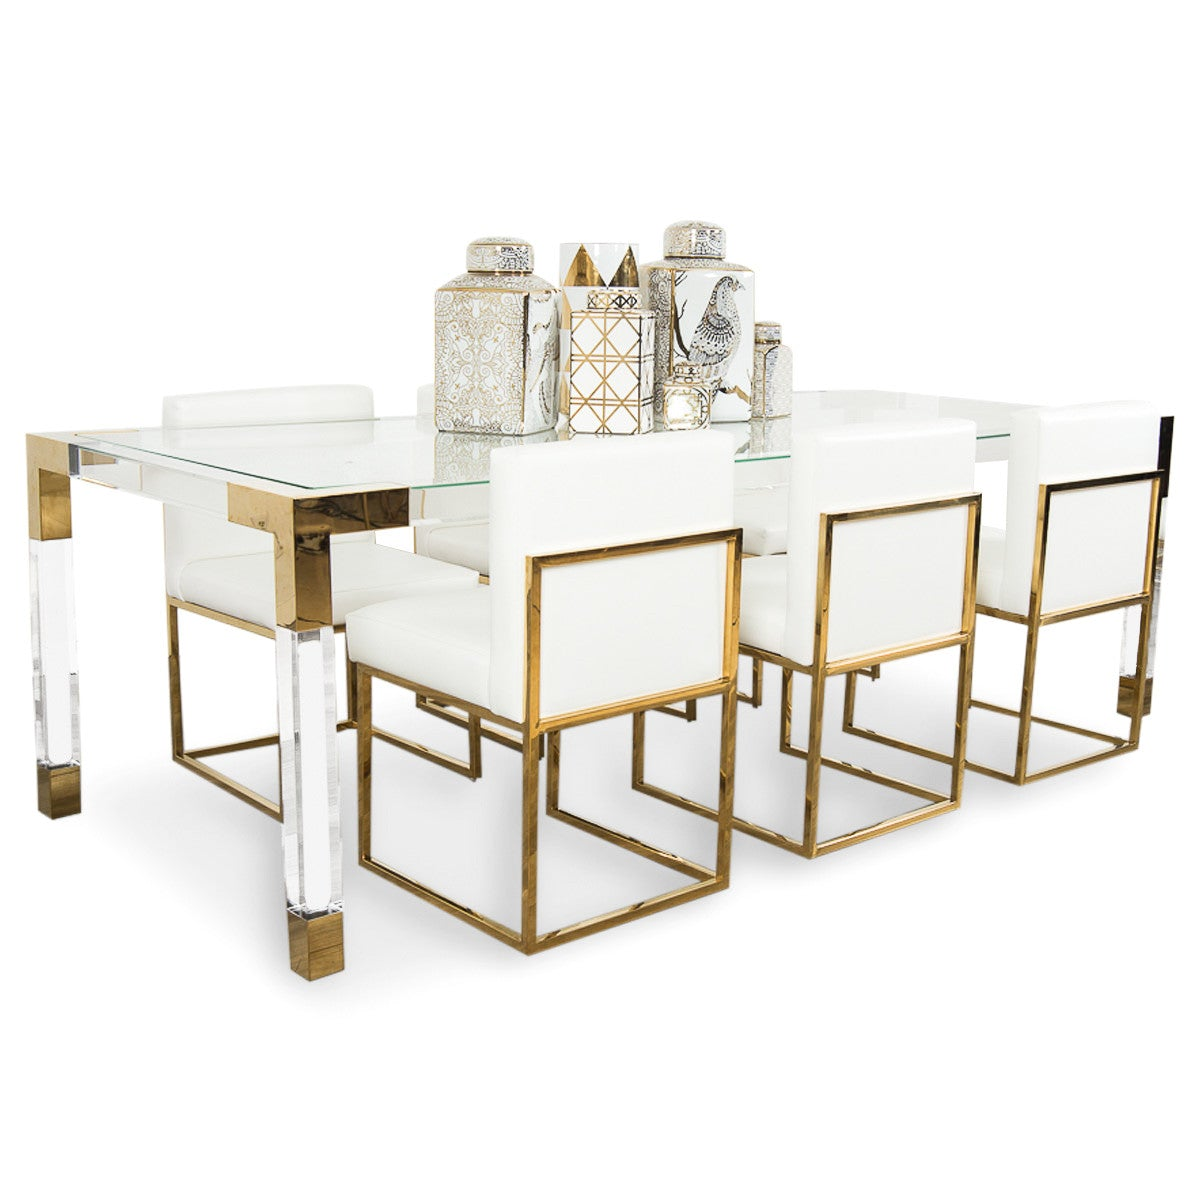 Trousdale Dining Table - ModShop1.com